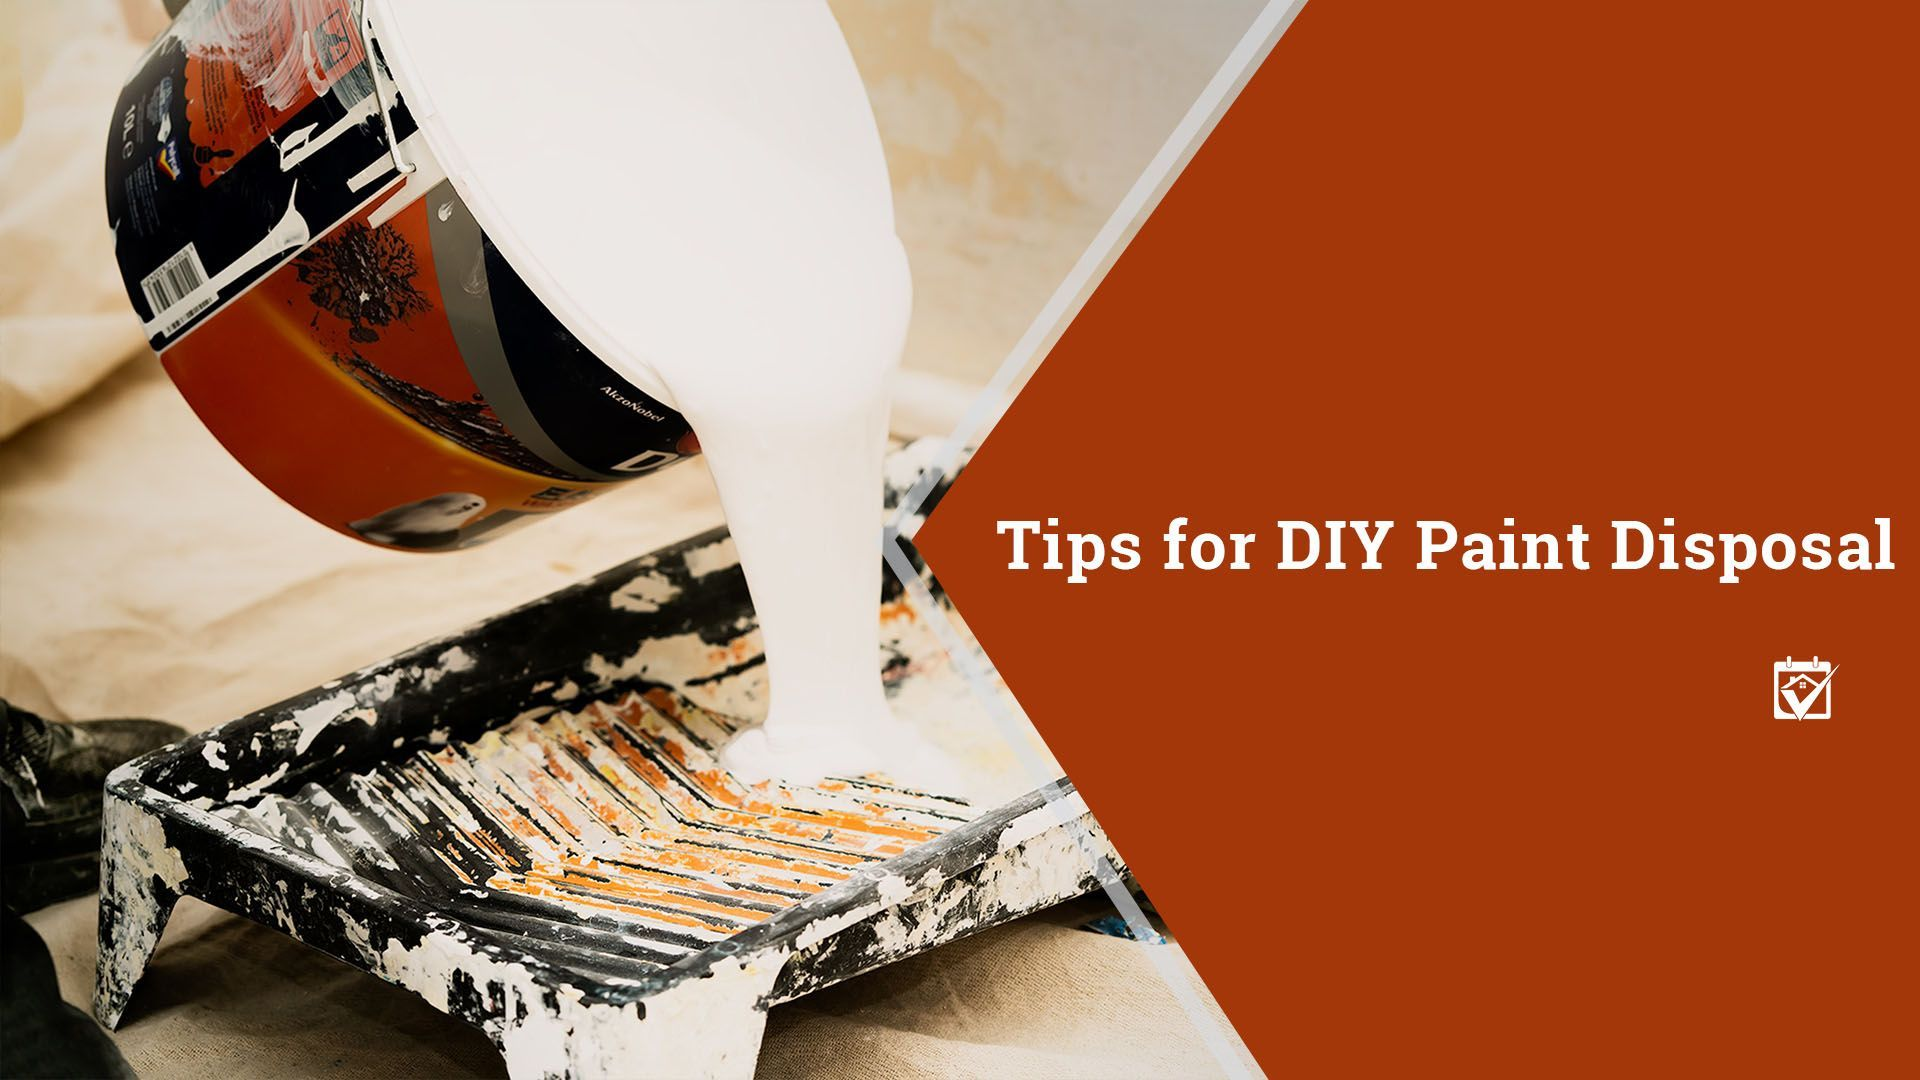 5 tips for diy paint disposal diy painting paint